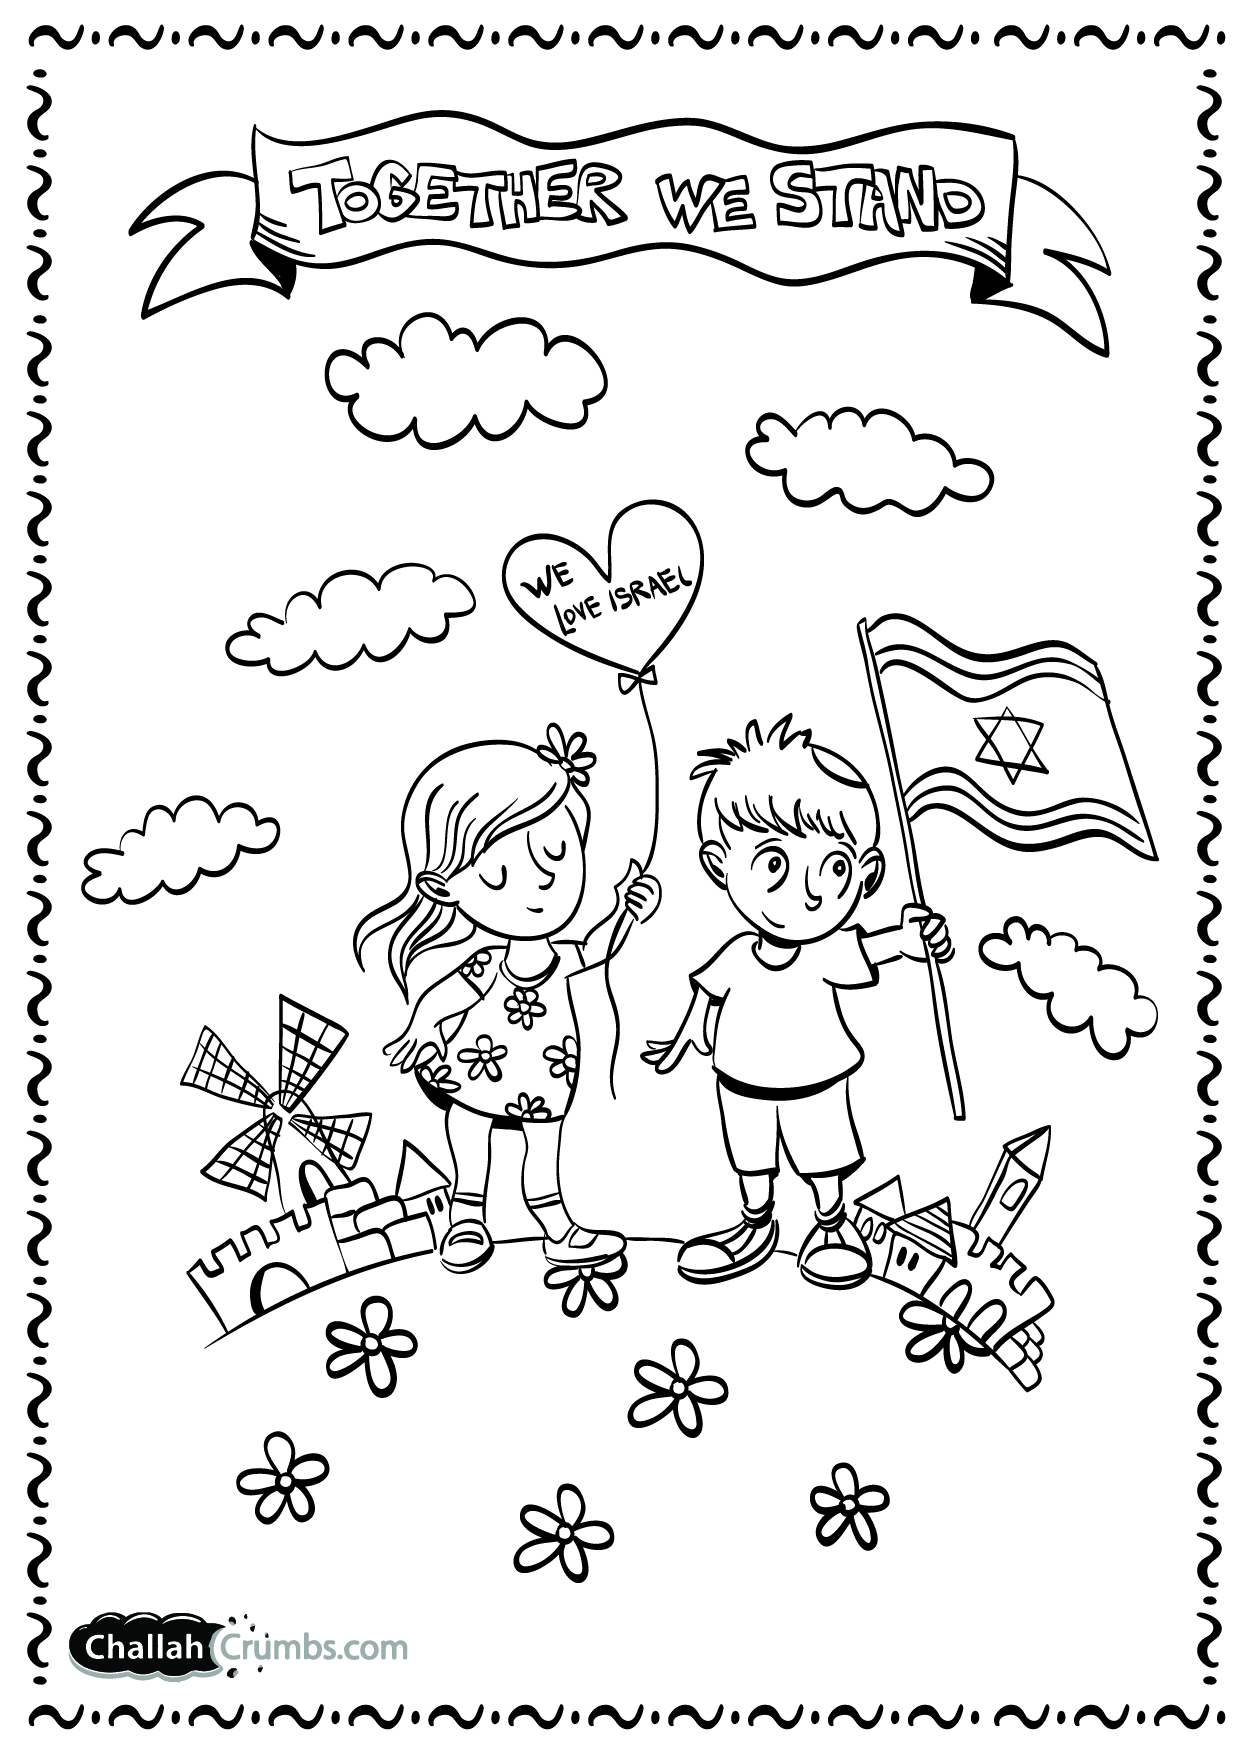 Uncategorized Alef Bet Coloring Pages yom haatzmaut coloring page challah crumbs page